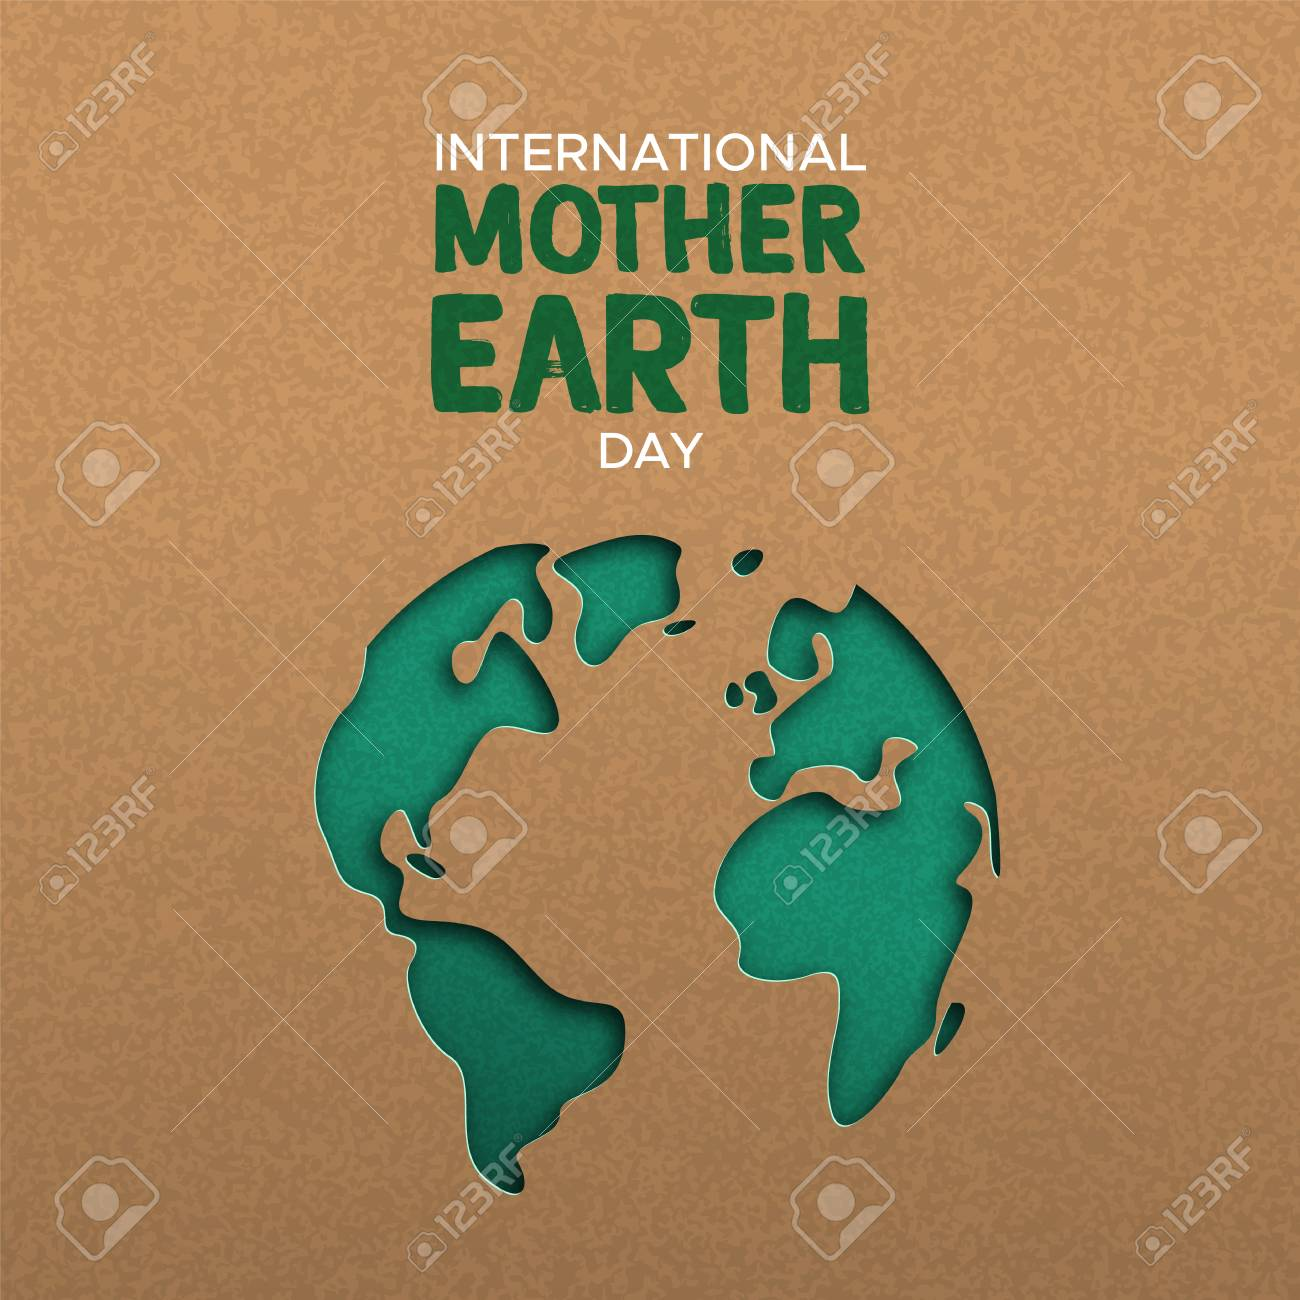 International Mother Earth Day illustration of green papercut world map. Recycled paper cutout for planet conservation awareness. - 122042261